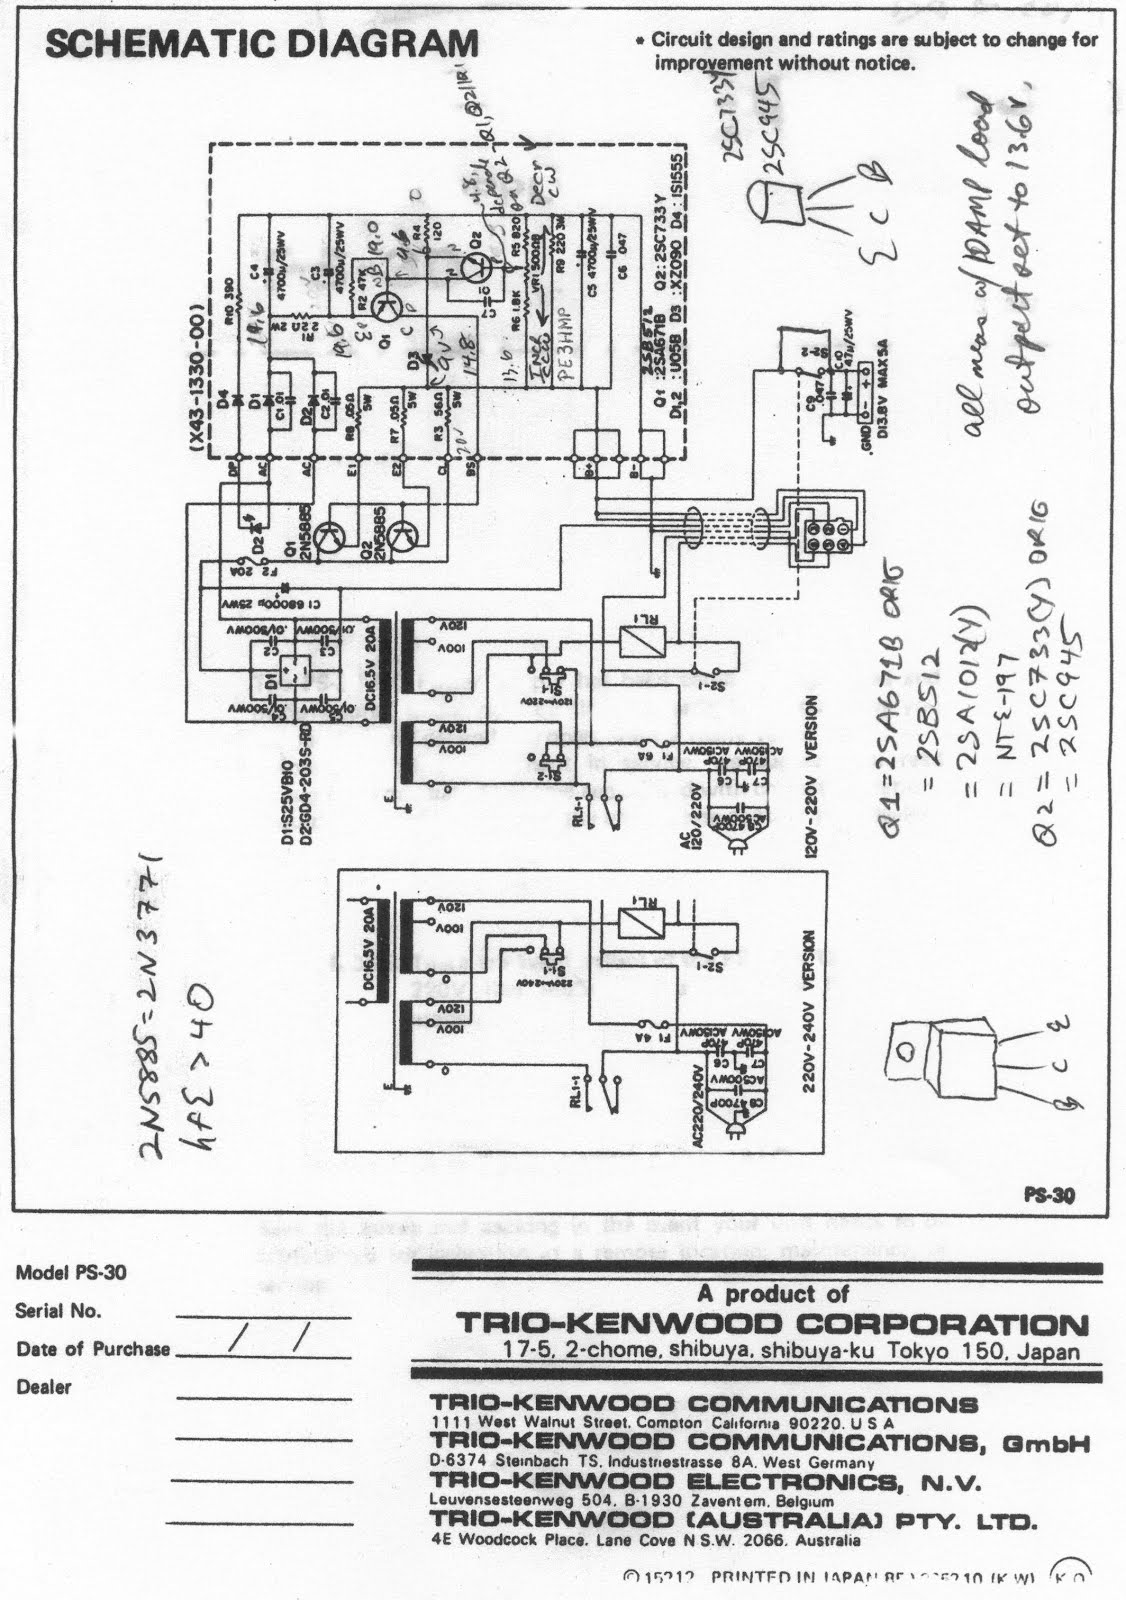 kenwood%2Btm%2Bd700%2Bschematic wiring diagram for kenwood ddx371 the wiring diagram case 5130 wiring diagram at reclaimingppi.co